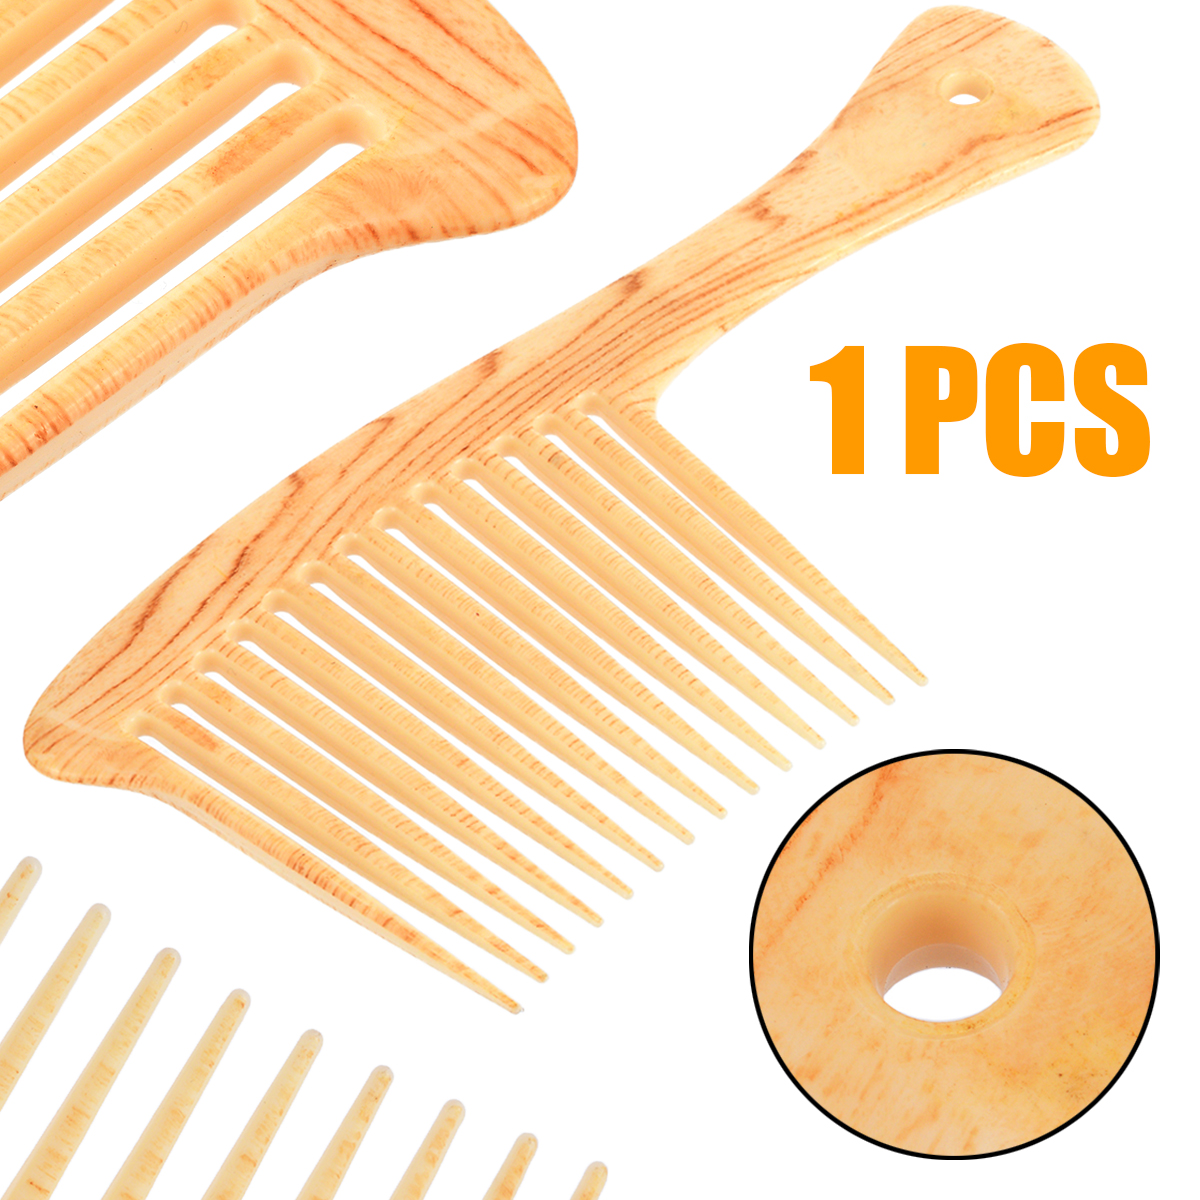 Mayitr 1pc Large Wide Tooth Comb Hair Detangling Hairdressing Rake Comb Suitable For Salon Home Use